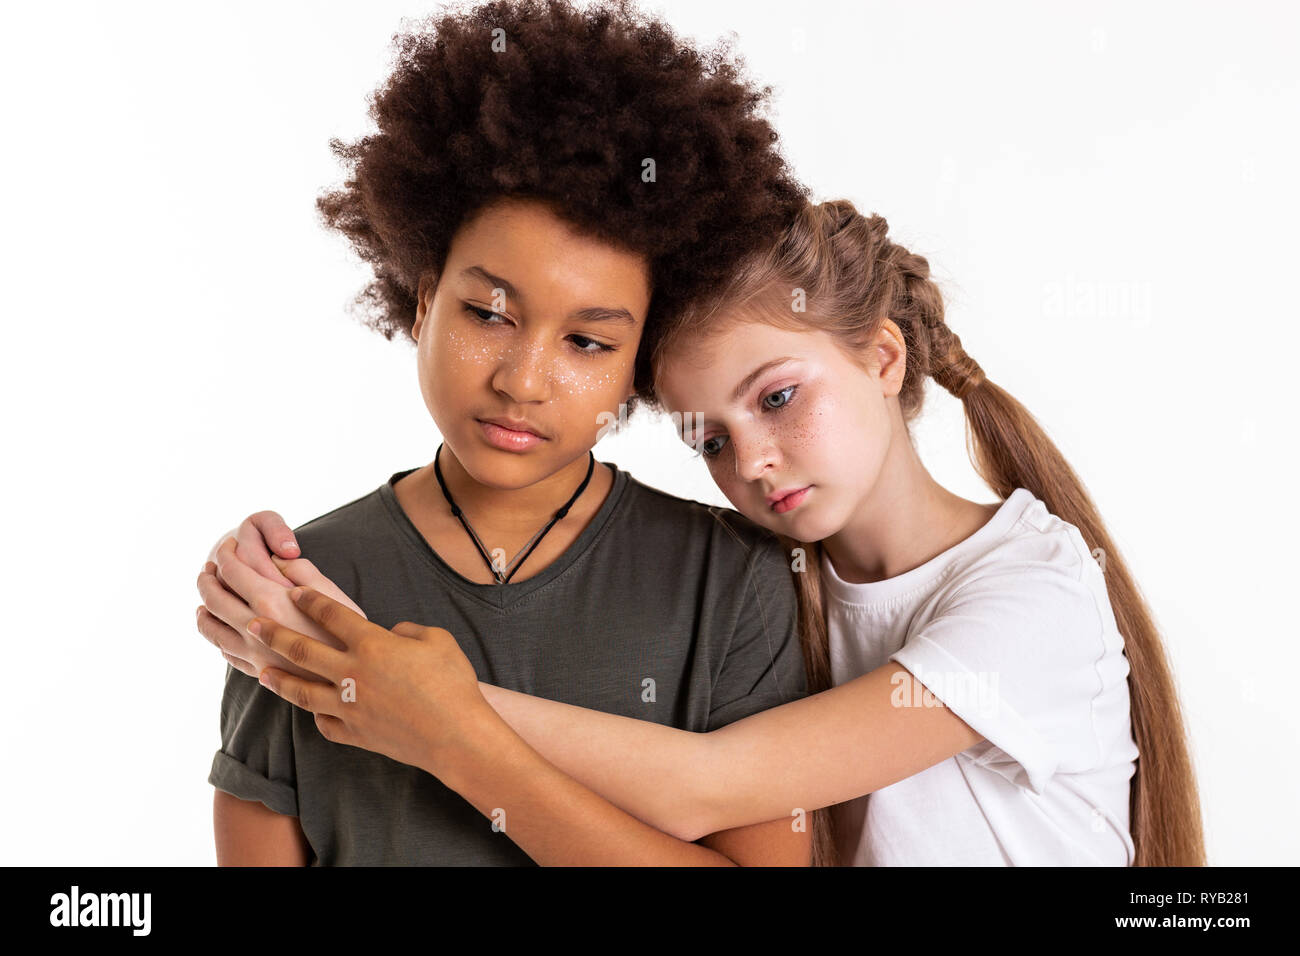 Pleasant calm children staying together and hugging - Stock Image